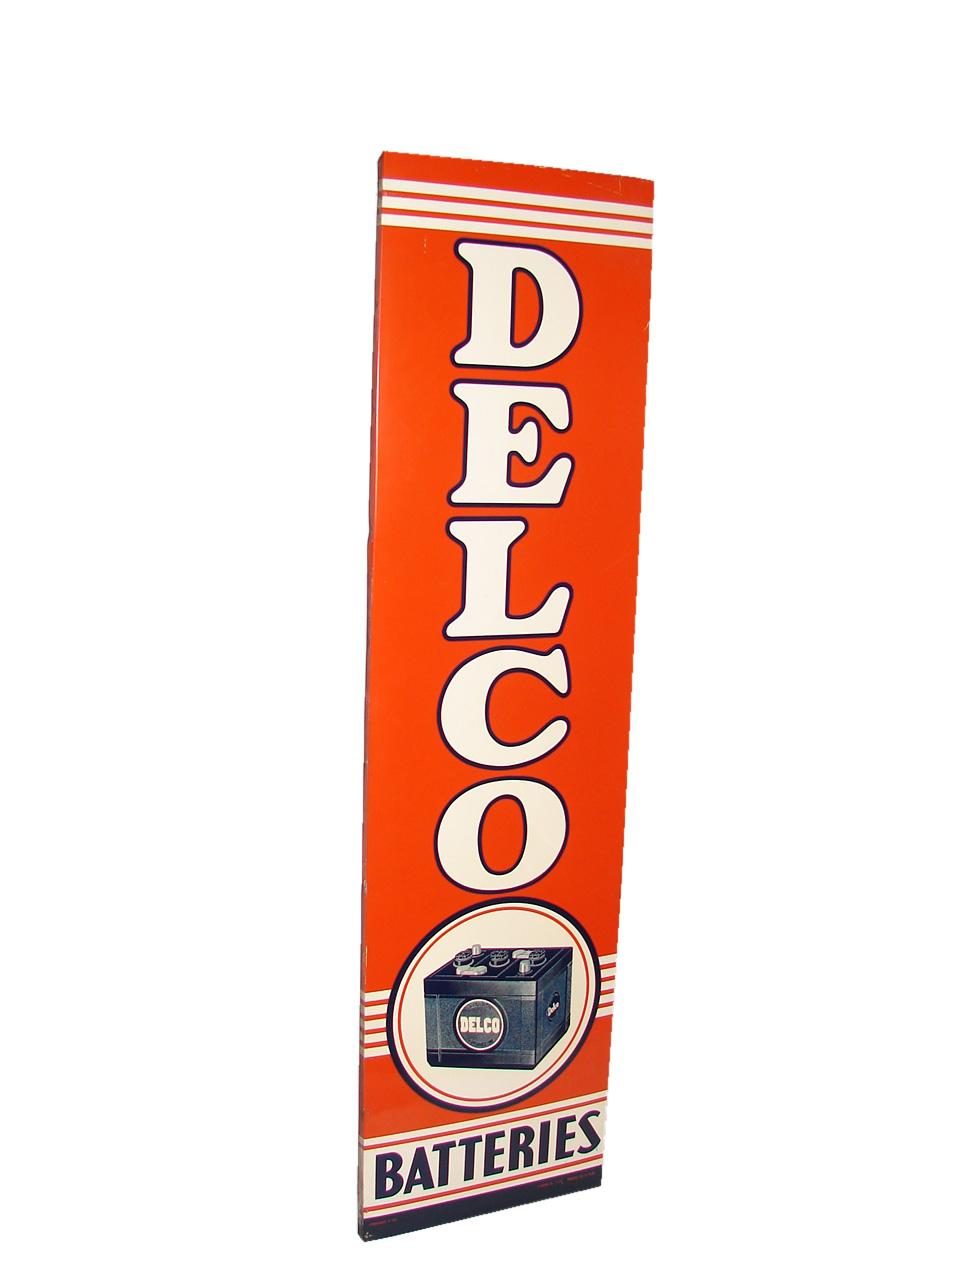 Highly desirable N.O.S. 1950s Delco Batteries wood framed garage sign with over-sized battery graphic. - Front 3/4 - 116565